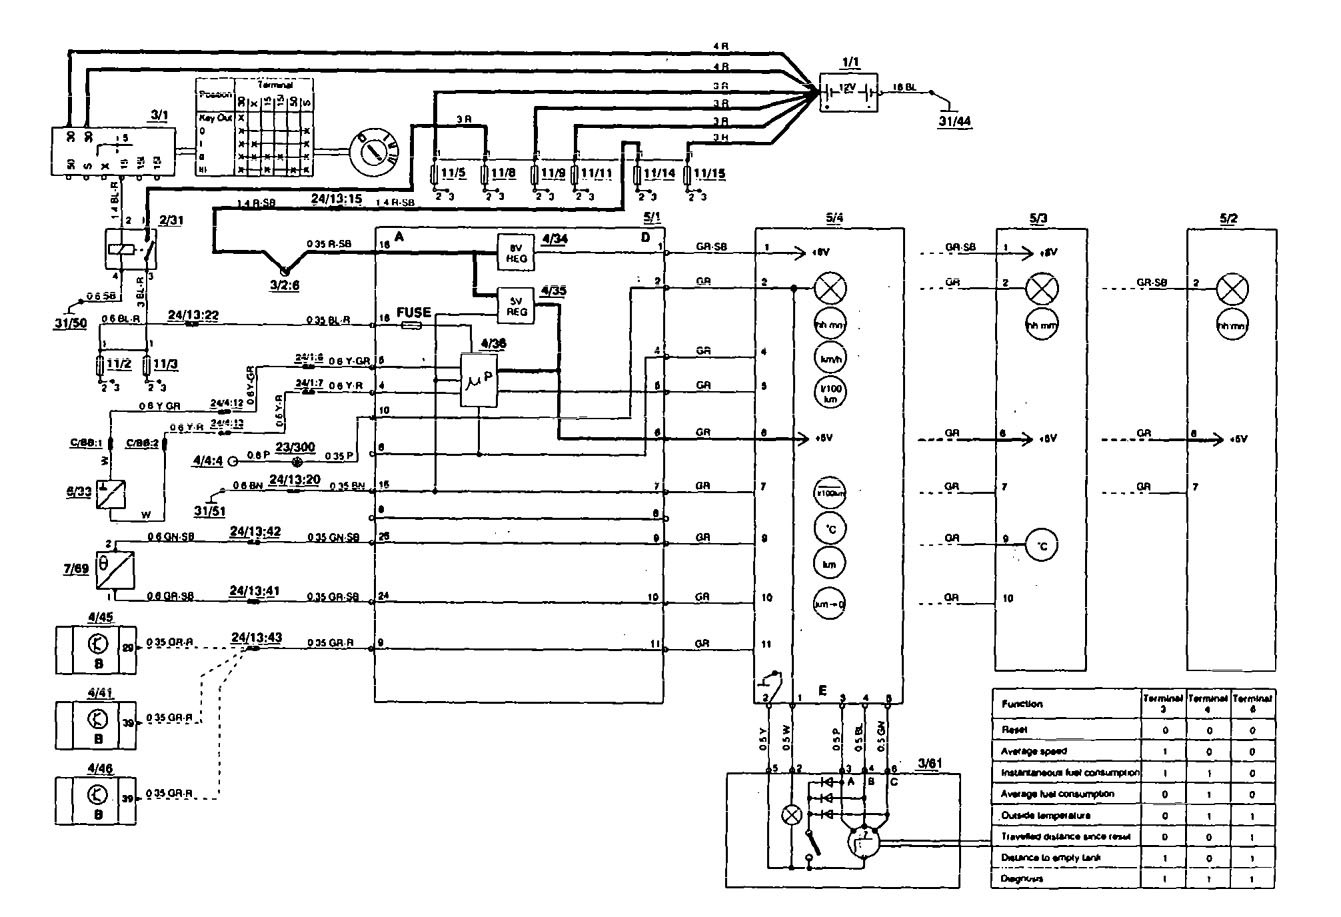 1994 Volvo 850 Wiring Diagram Great Design Of 1996 Pontiac Firebird Fuse Box Master Electric Motor Turbo Vacuum 1995